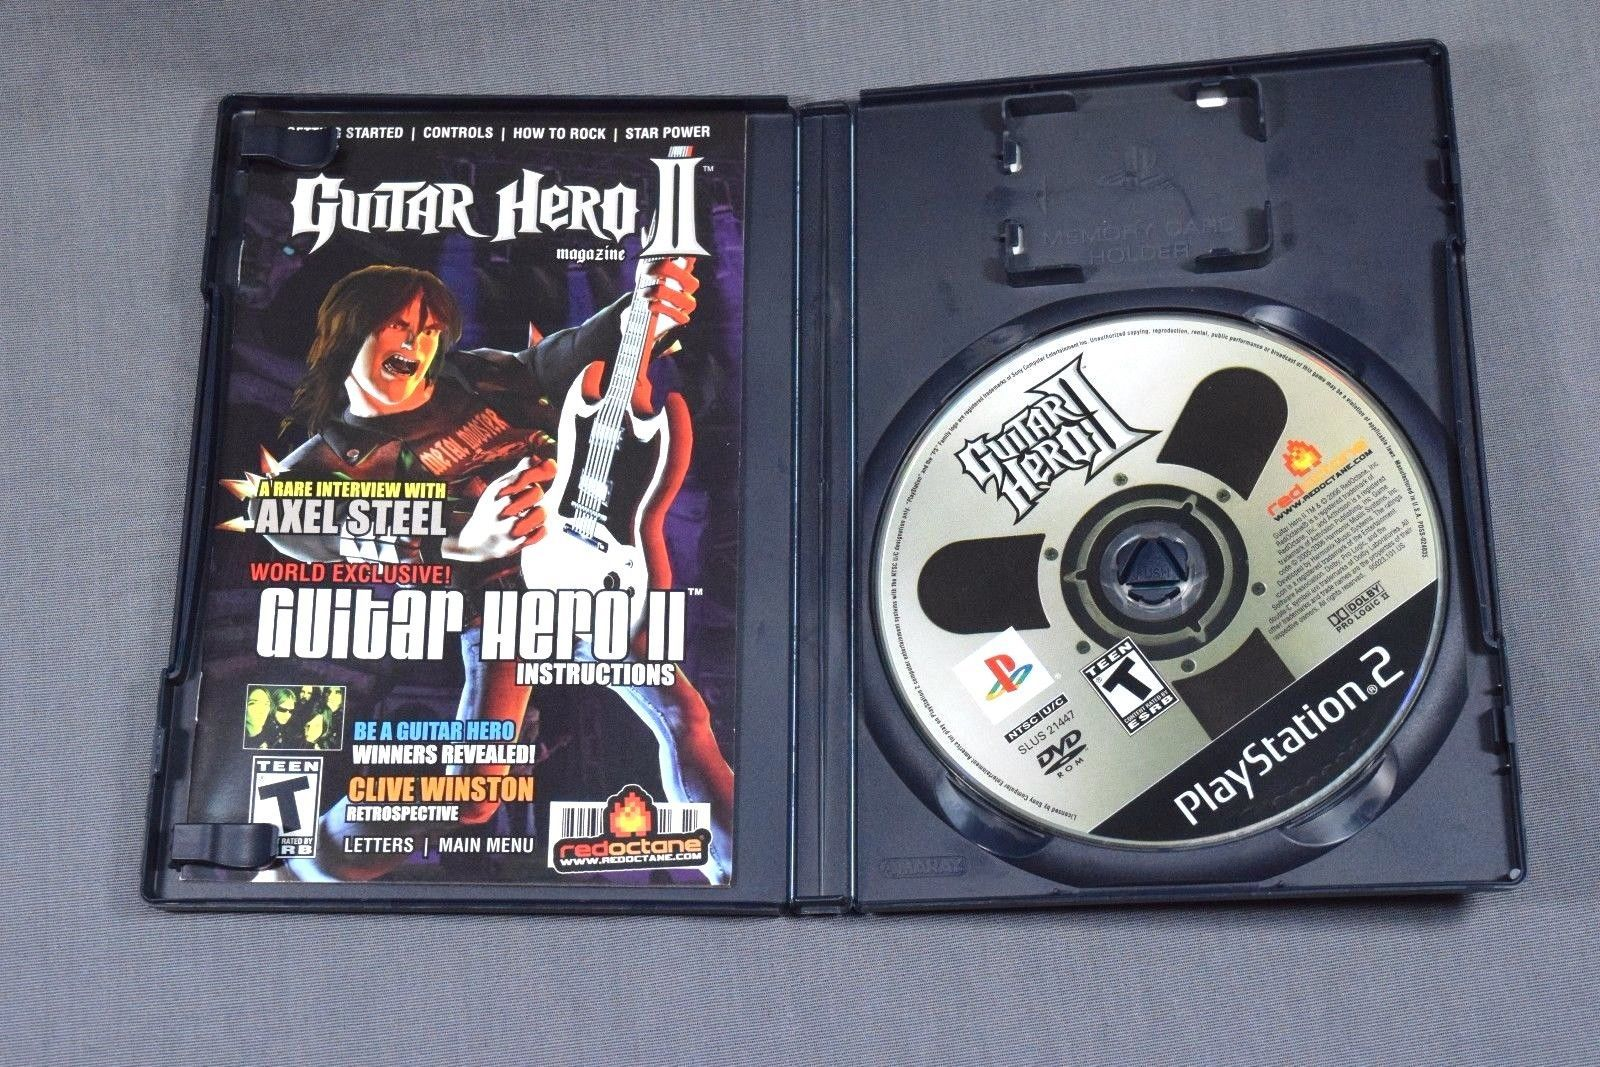 Guitar Hero Ii Playstation 2 Game Complete and 50 similar items